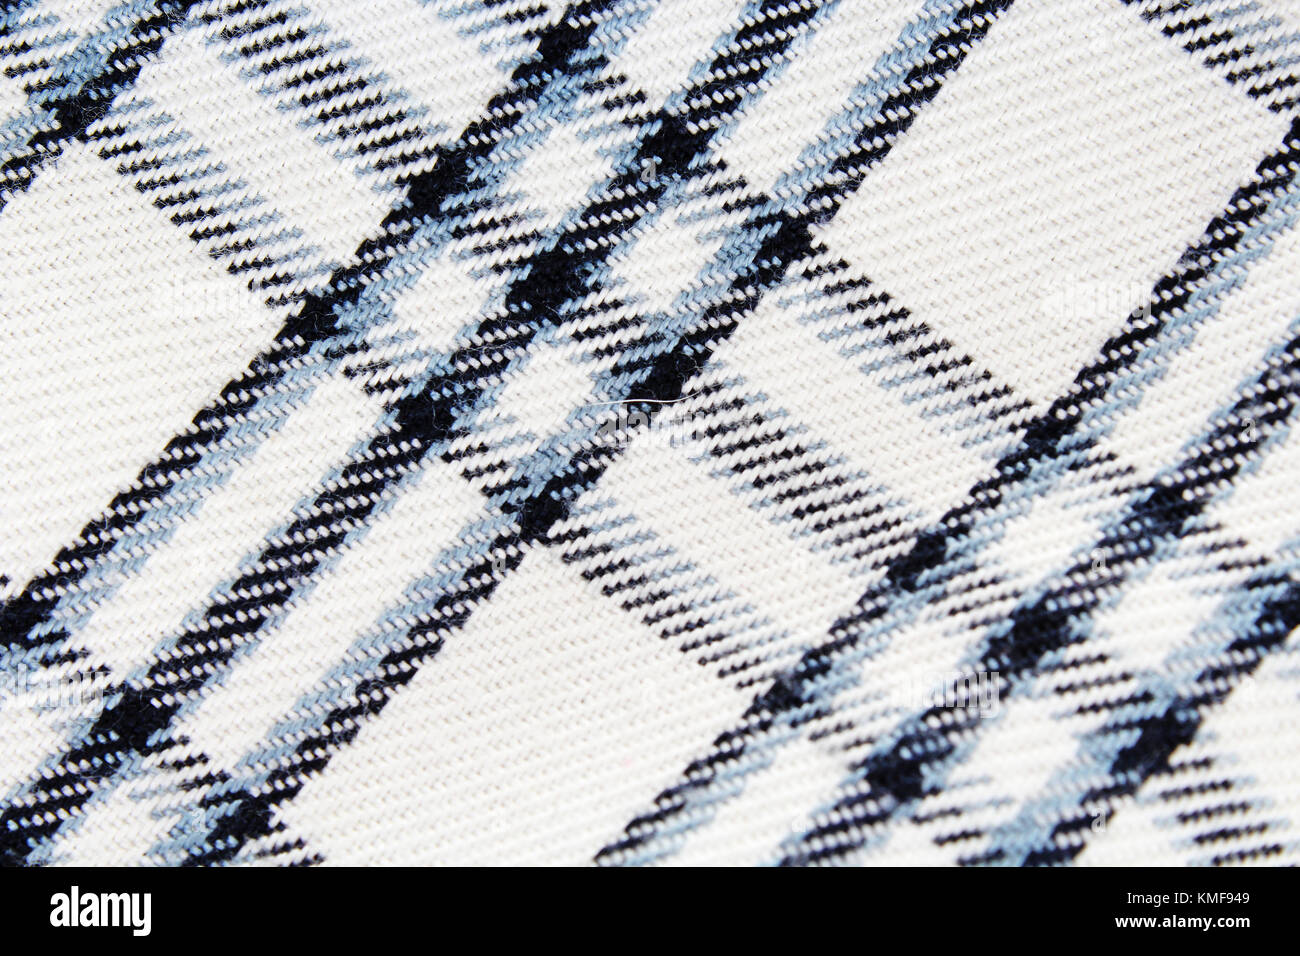 Chequered checked fabric dress material cloth texture pattern. - Stock Image